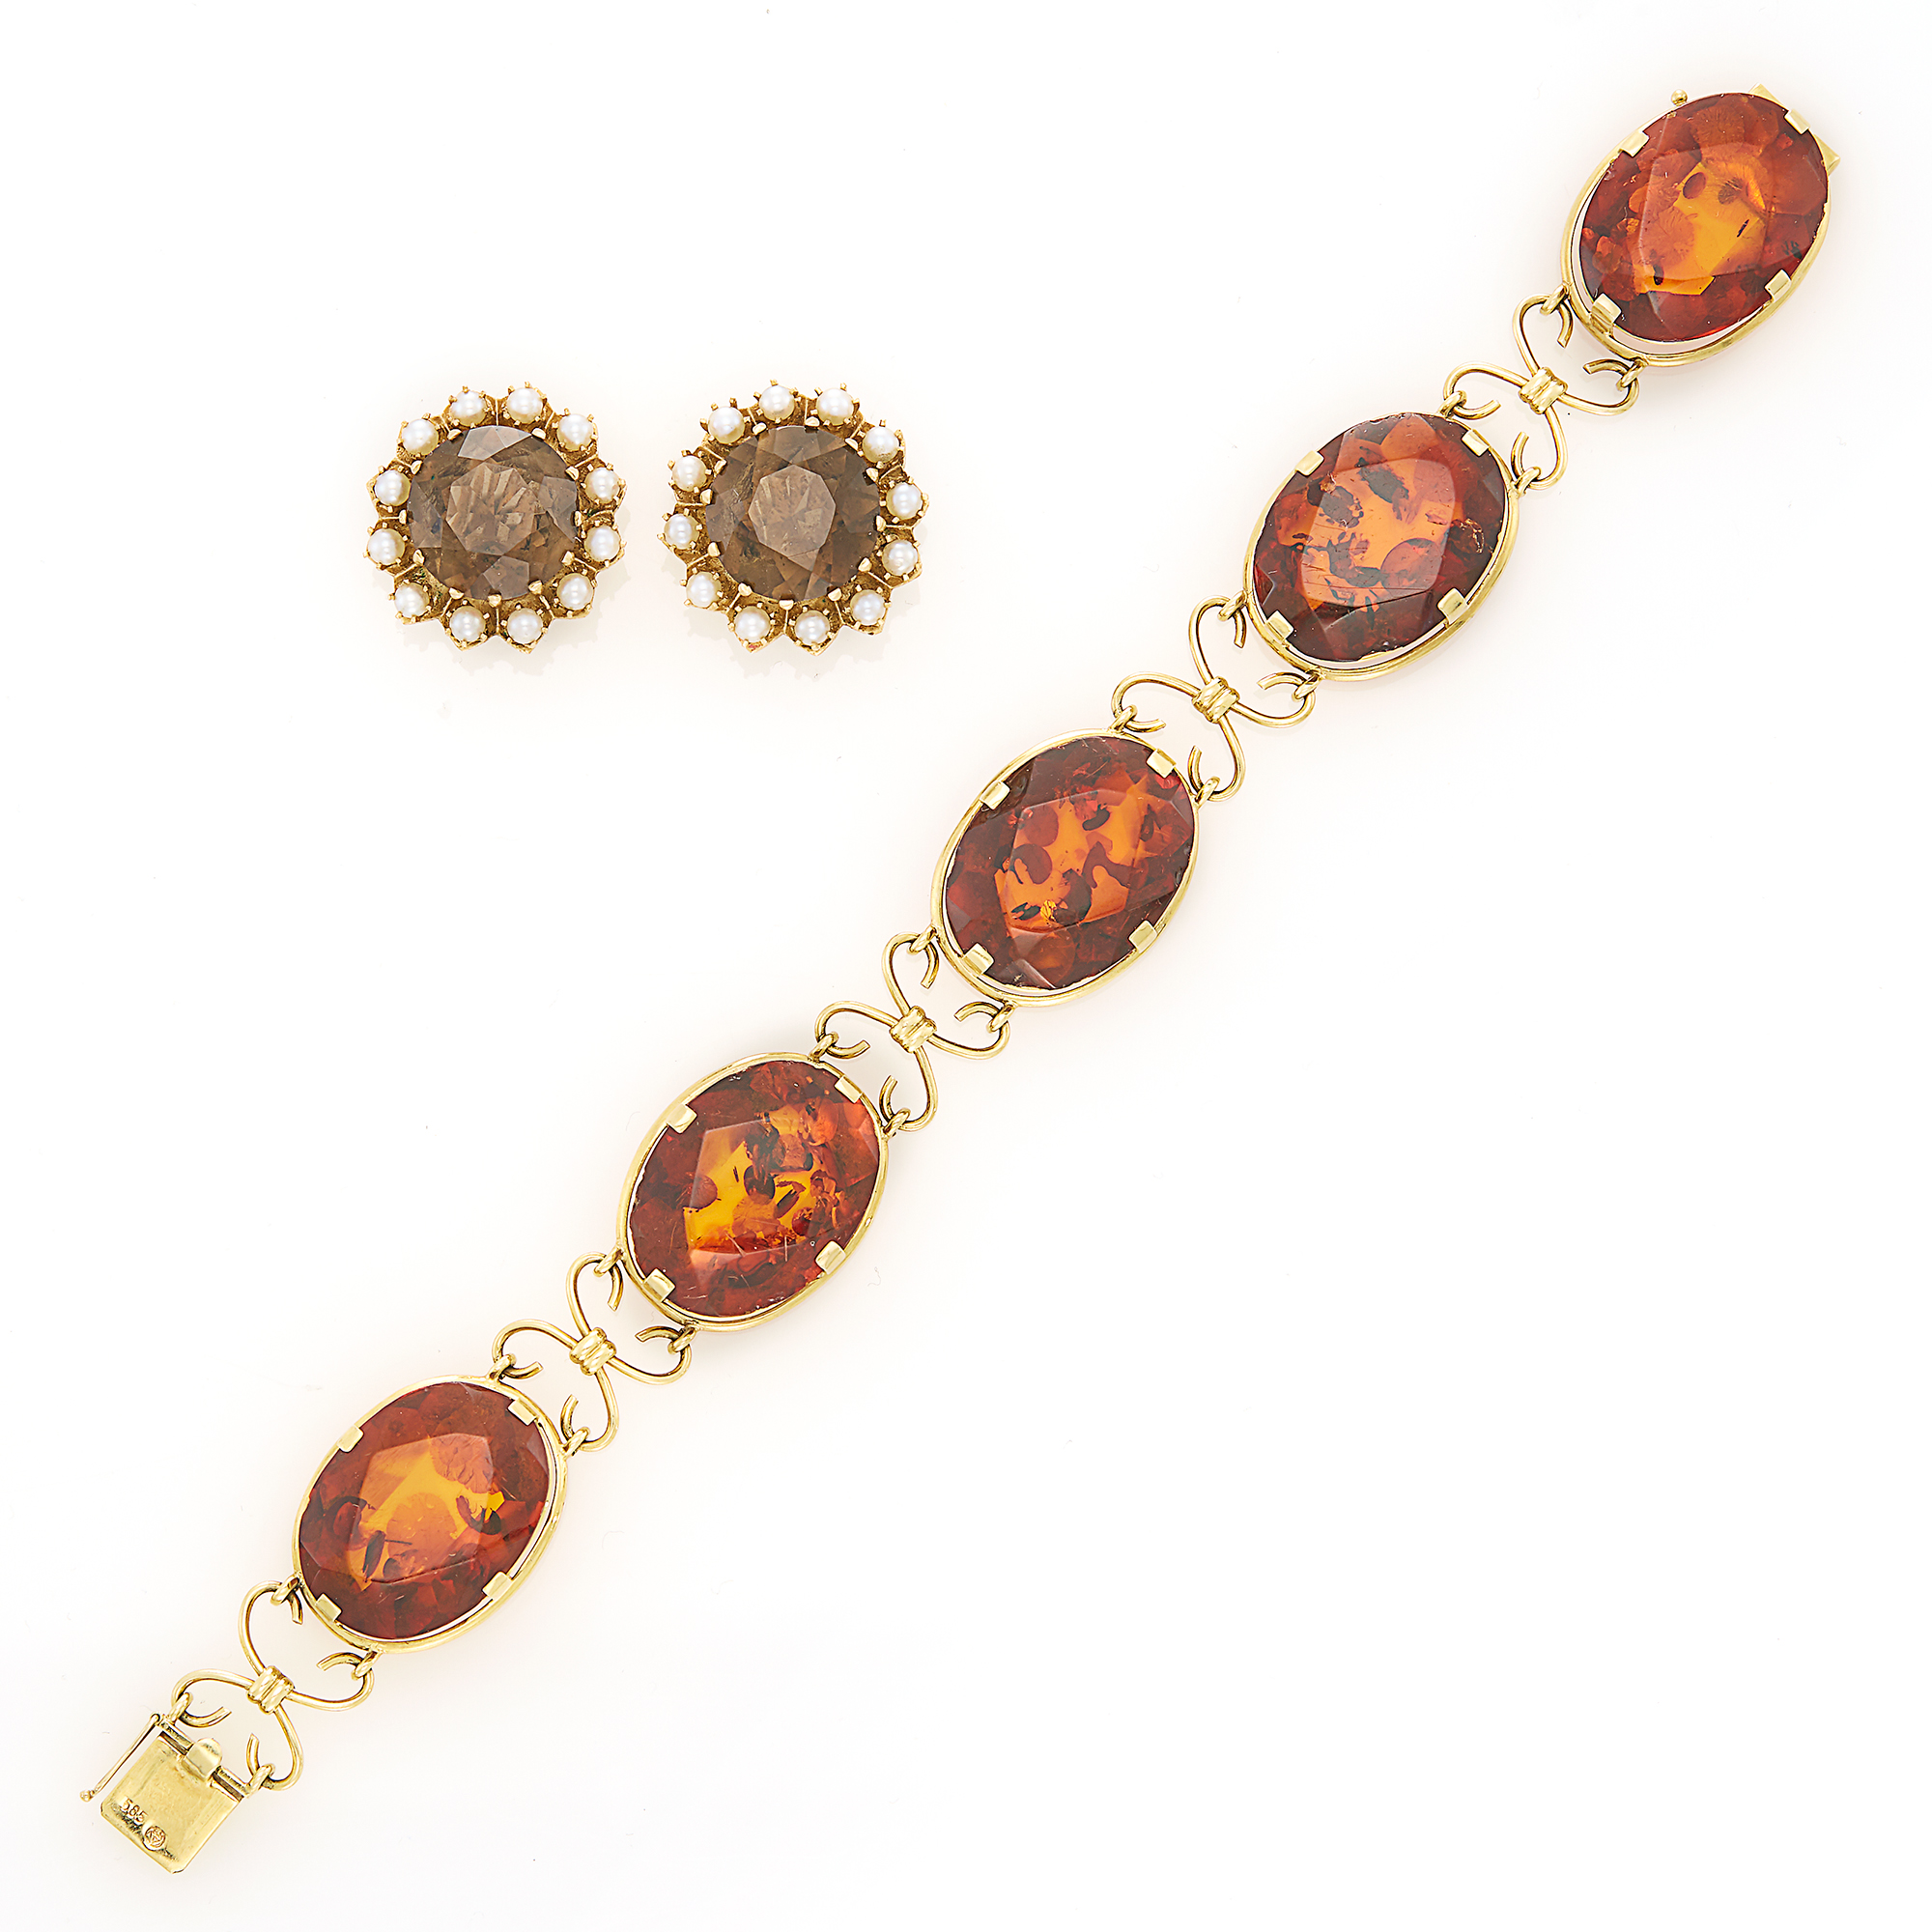 Lot image - Pair of Gold, Smoky Quartz and Cultured Pearl Earclips and Gold and Amber Bracelet